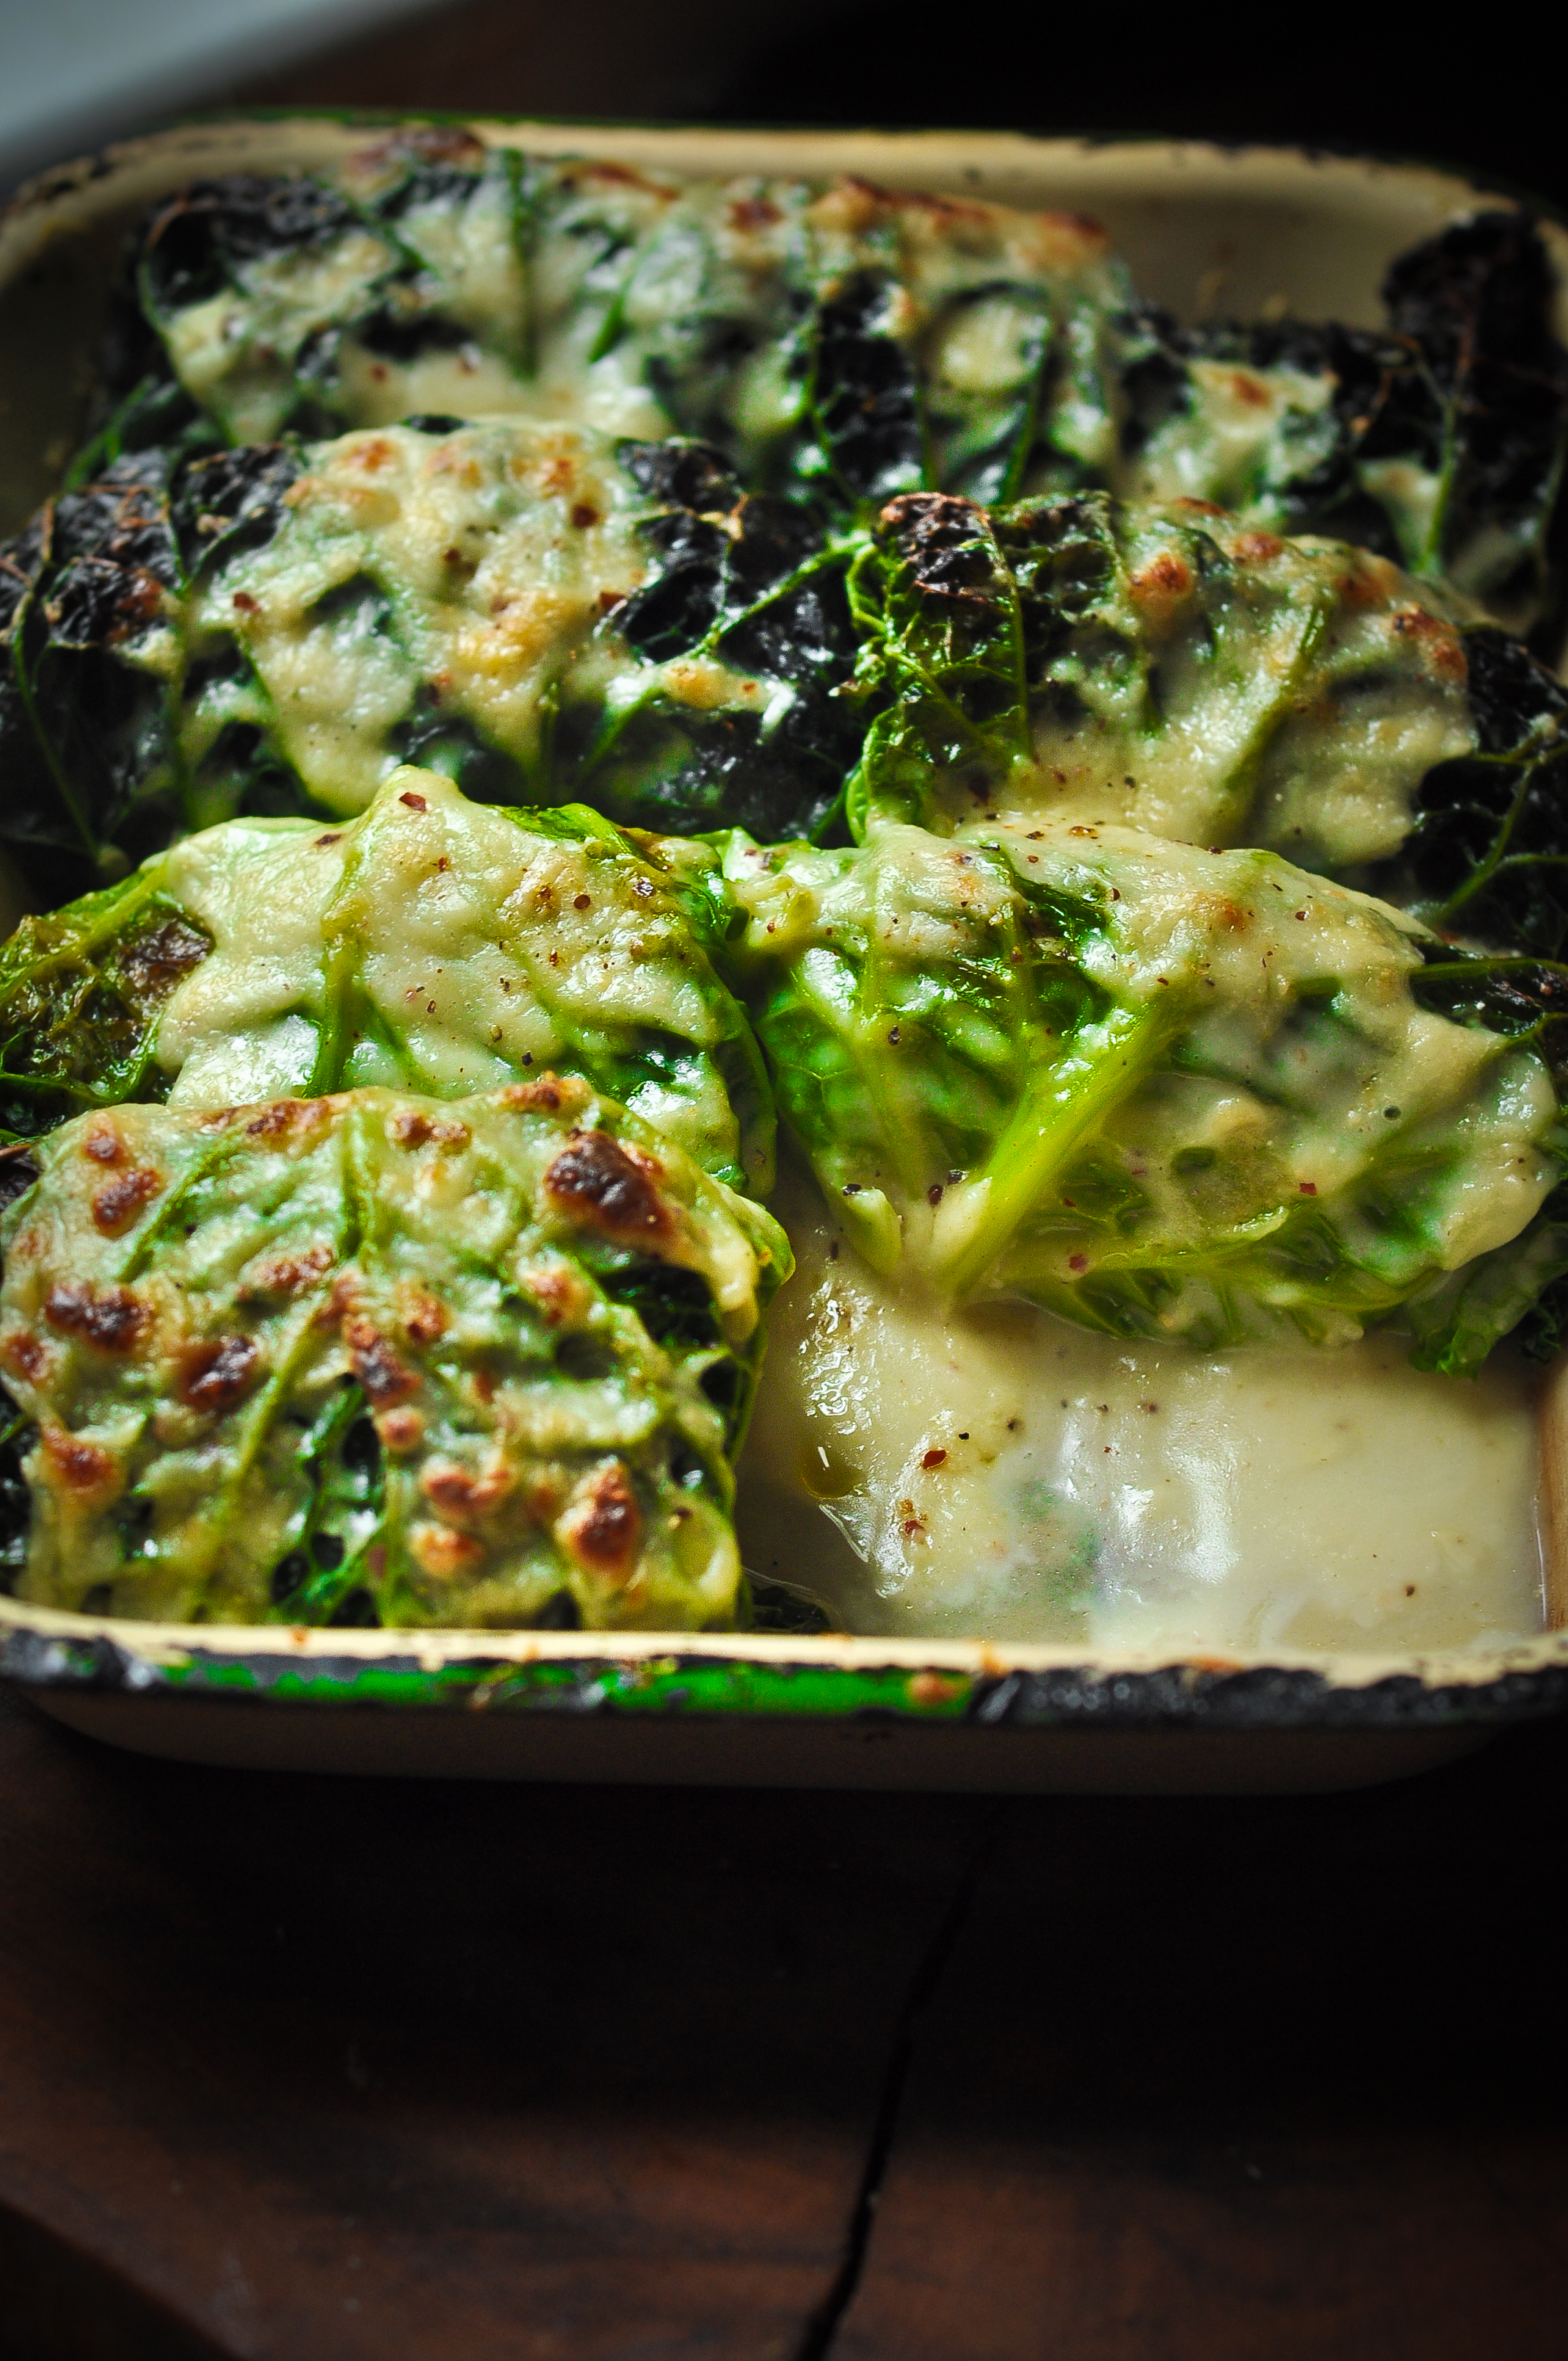 Skirlie Stuffed Savoy Cabbage Total Comfort Food It S Not F Ing Rocket Science